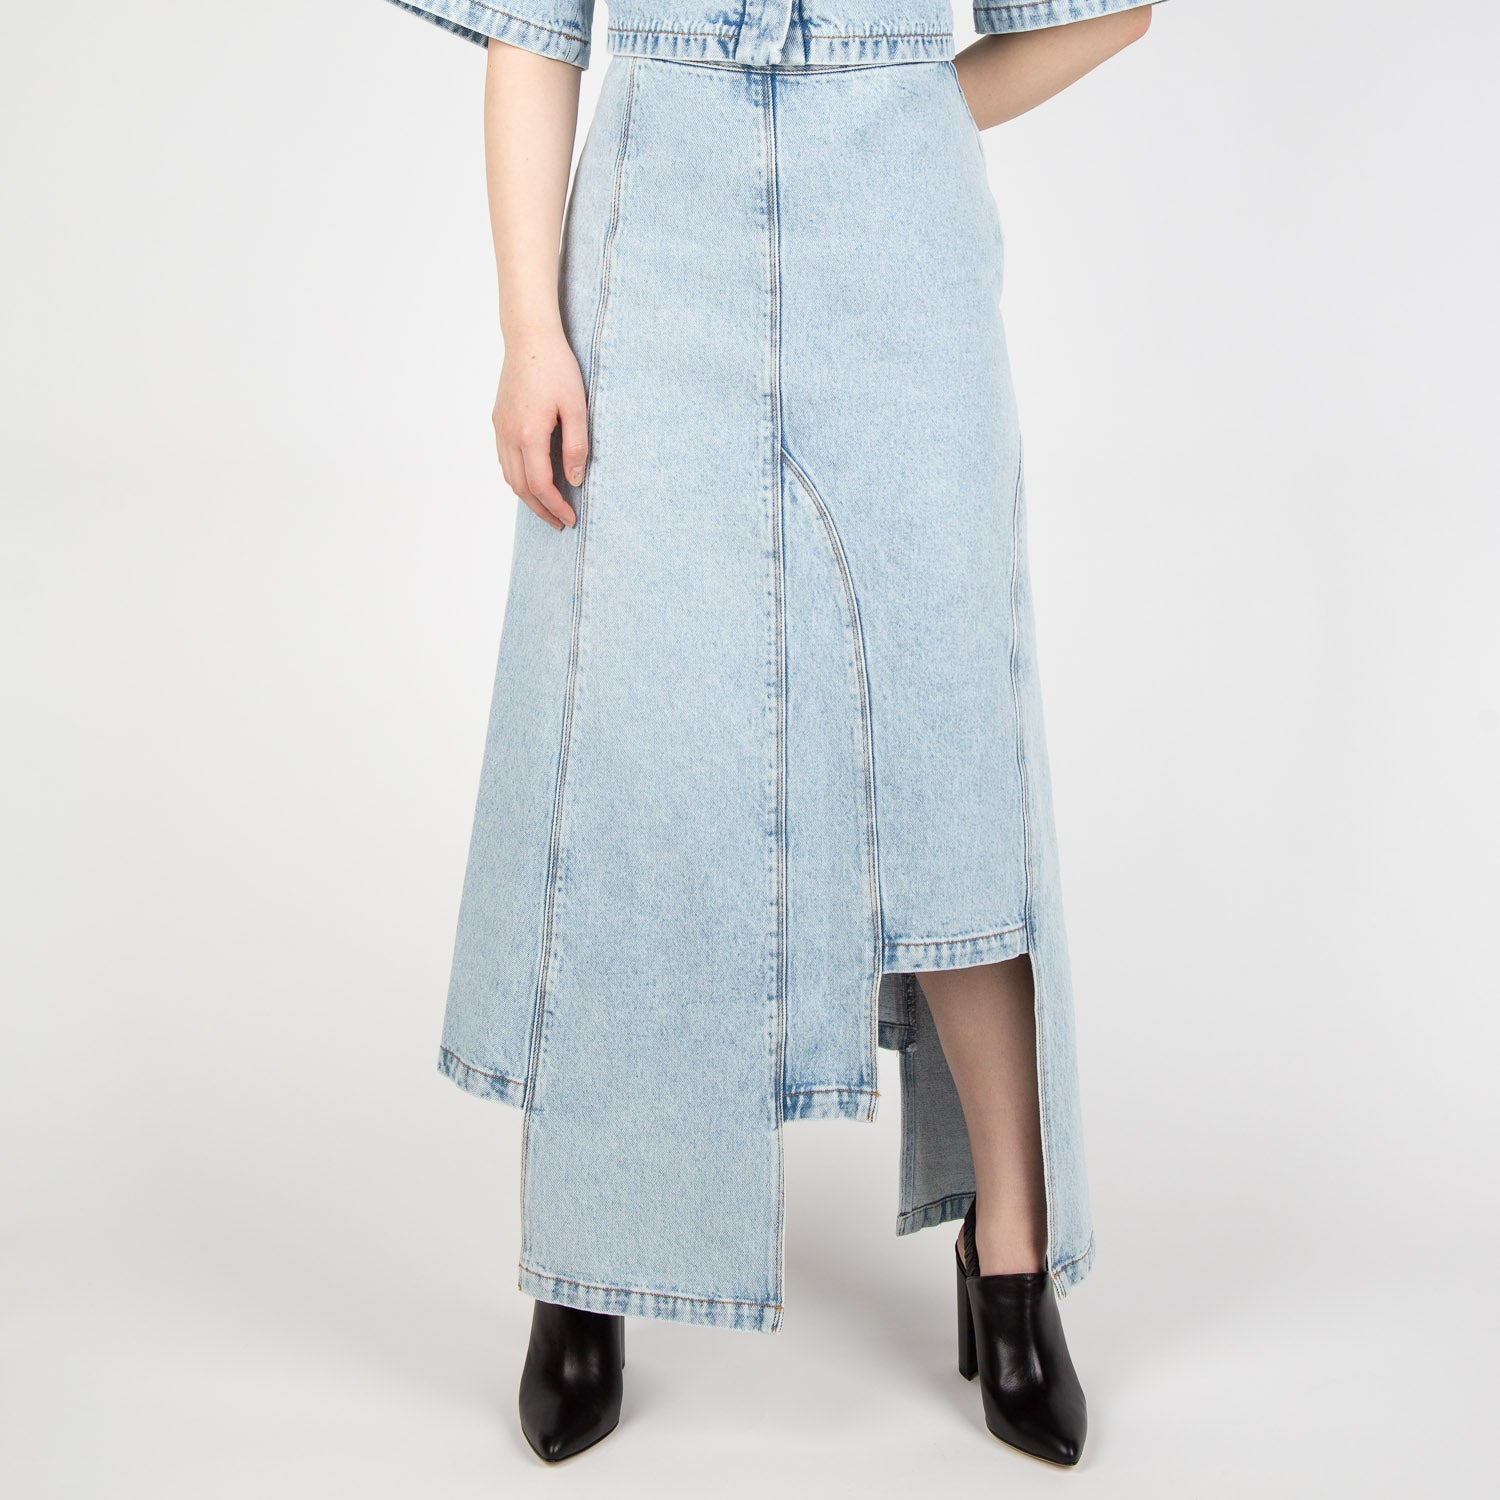 asymmetric denim skirt by Ssheena at Secret Location concept store